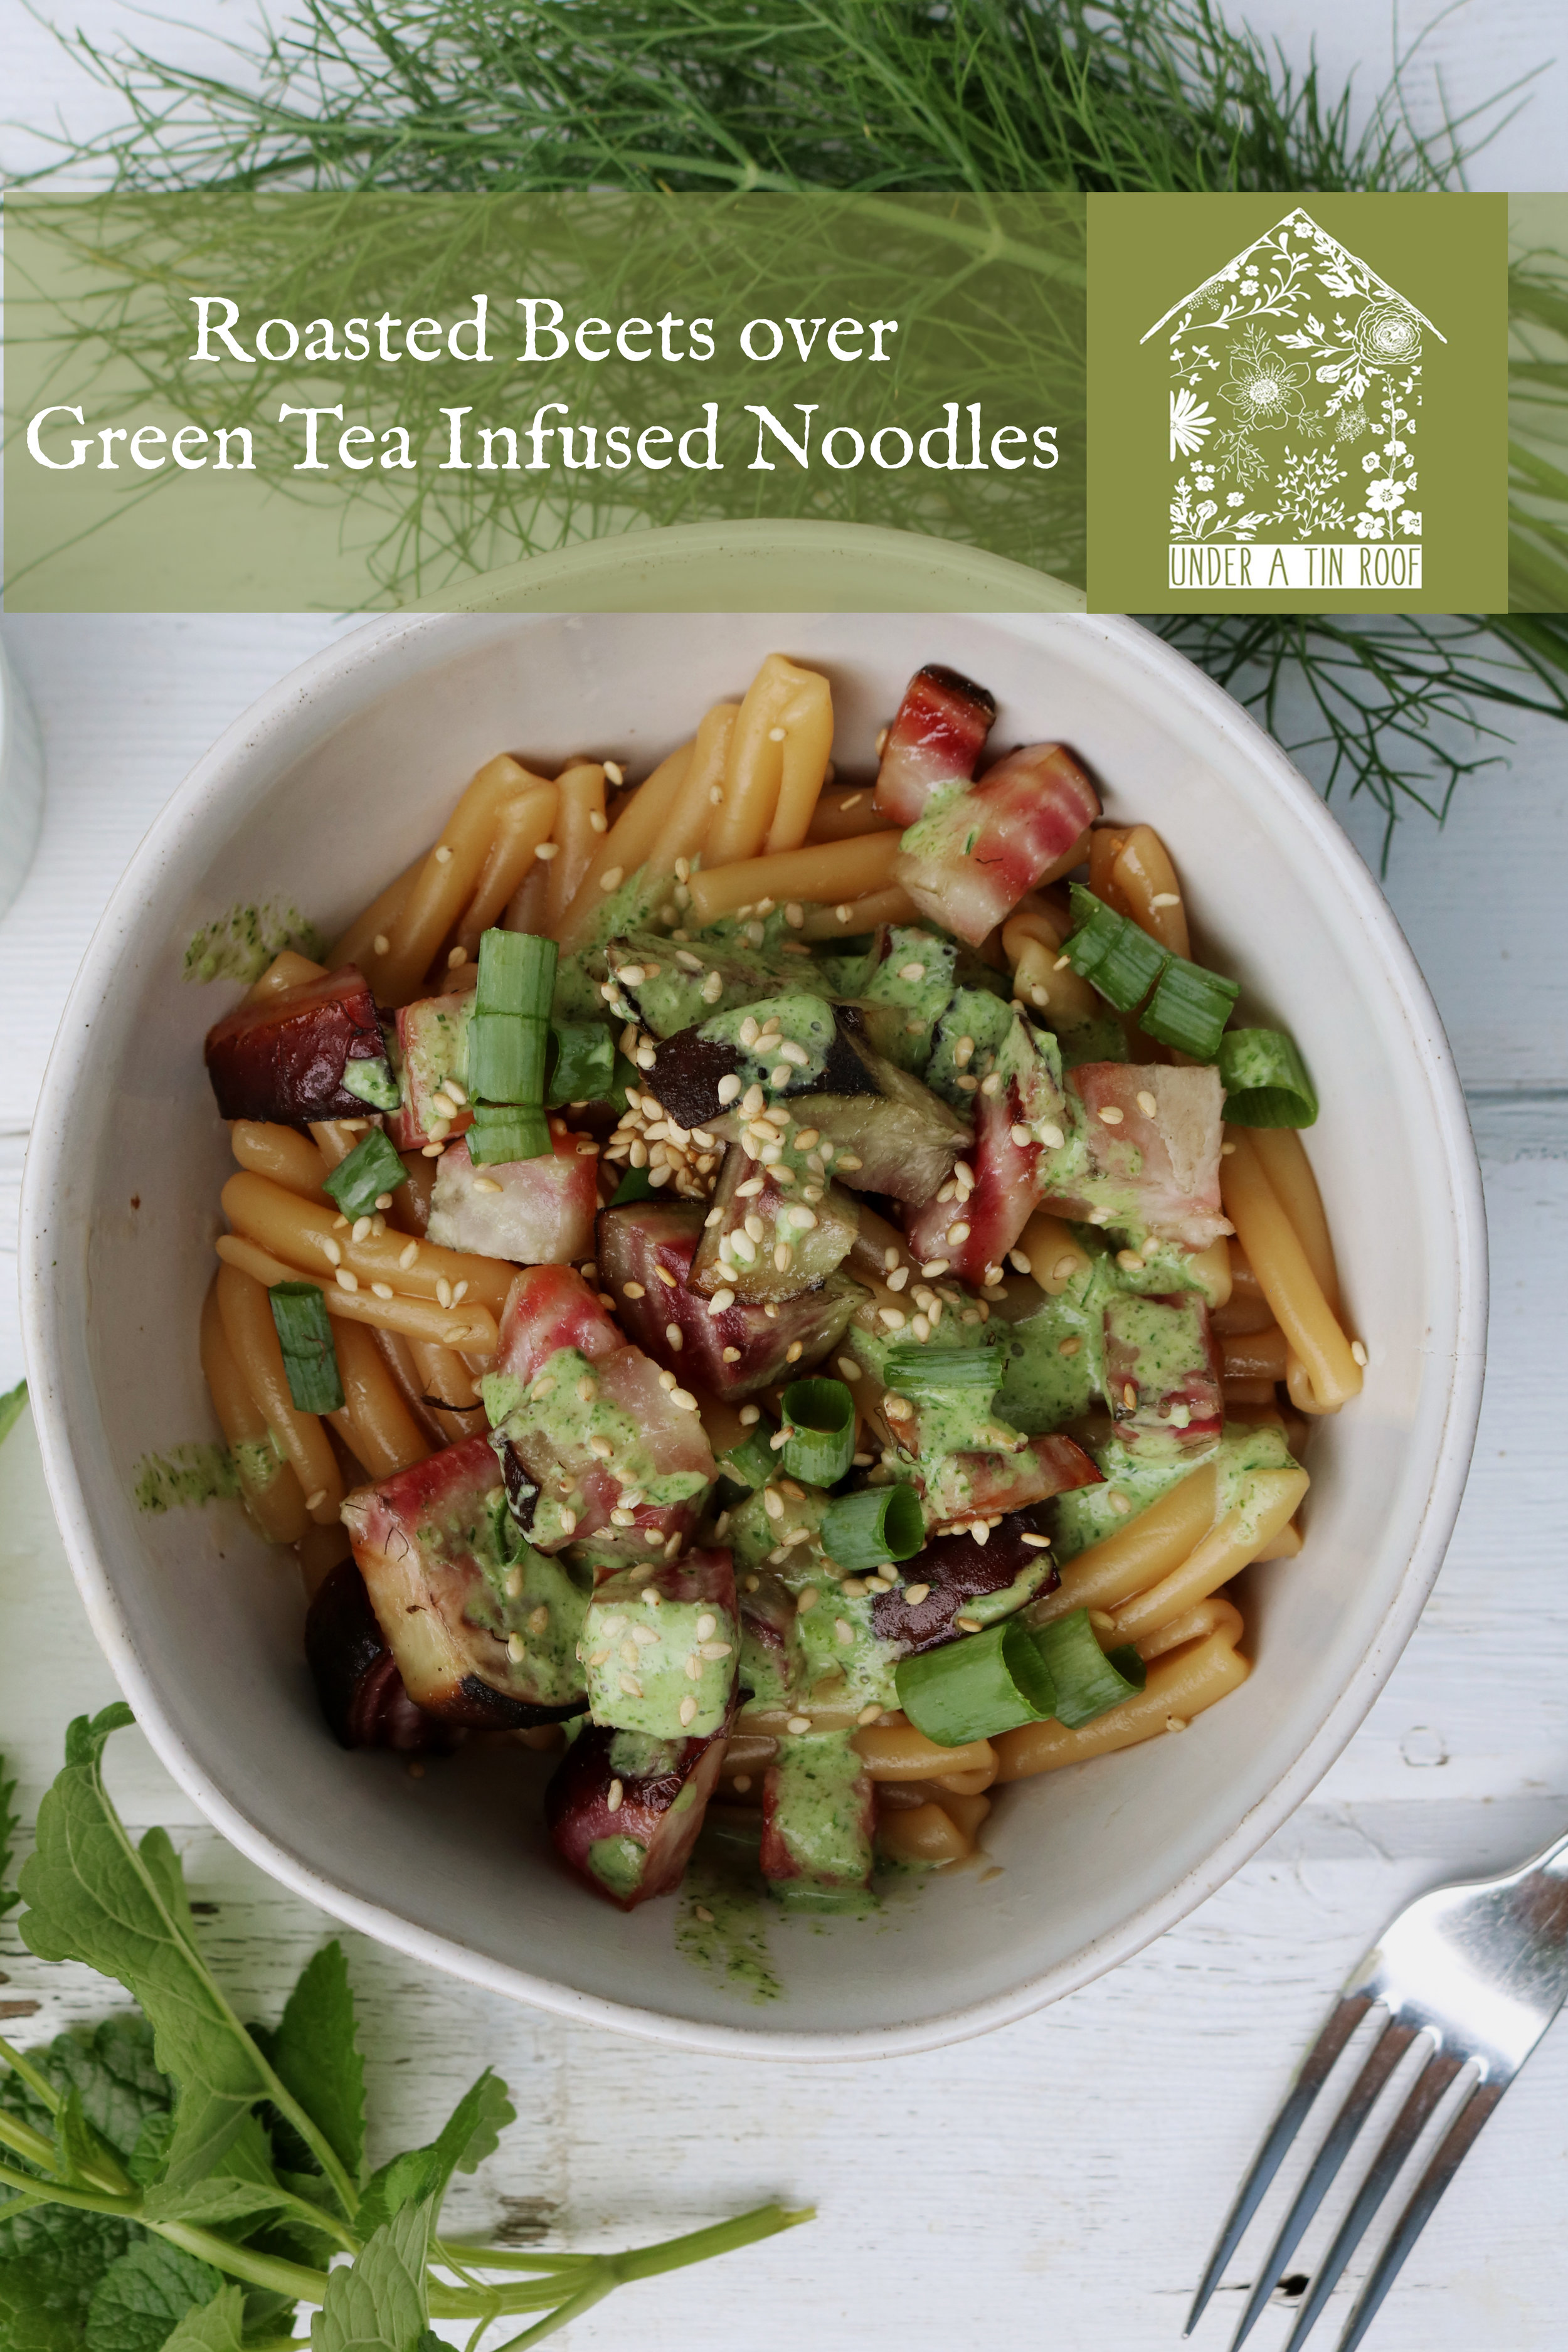 Roasted Beets over Green Tea Infused Noodles - Under A Tin Roof Blog